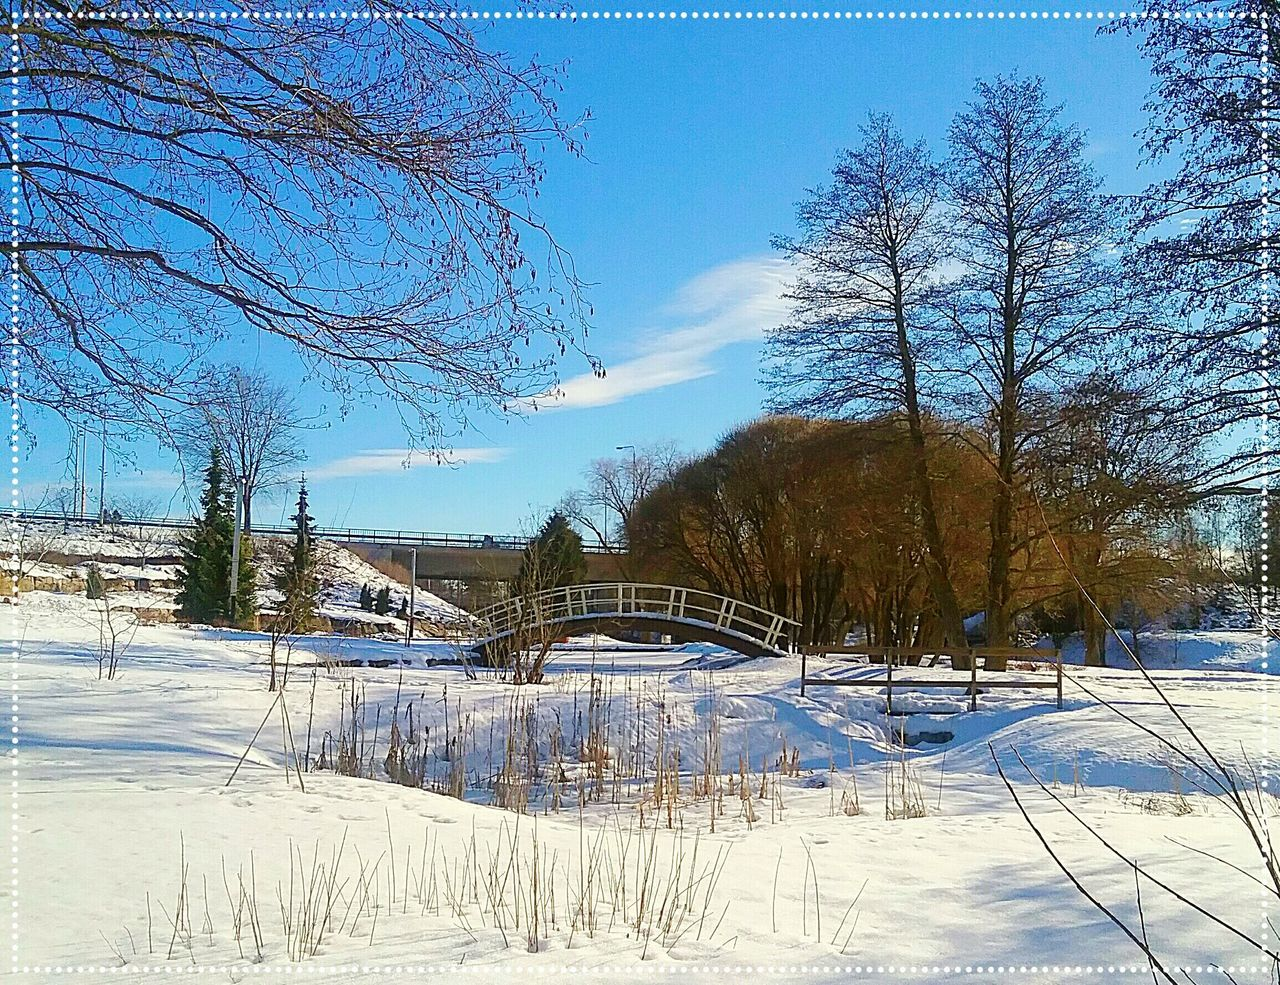 Warm Day Sunny Day Inthepark Arch Bridge Wooden Bridge Wooden Structure Arched Springtime Outdoors Park Outdoor Photography Still Snow Nopeople Sun Shining Nature Photography Trees And Sky Trees And Bushes Concrete Bridge Double Perfect Day Kotka Finland Adapted To The City